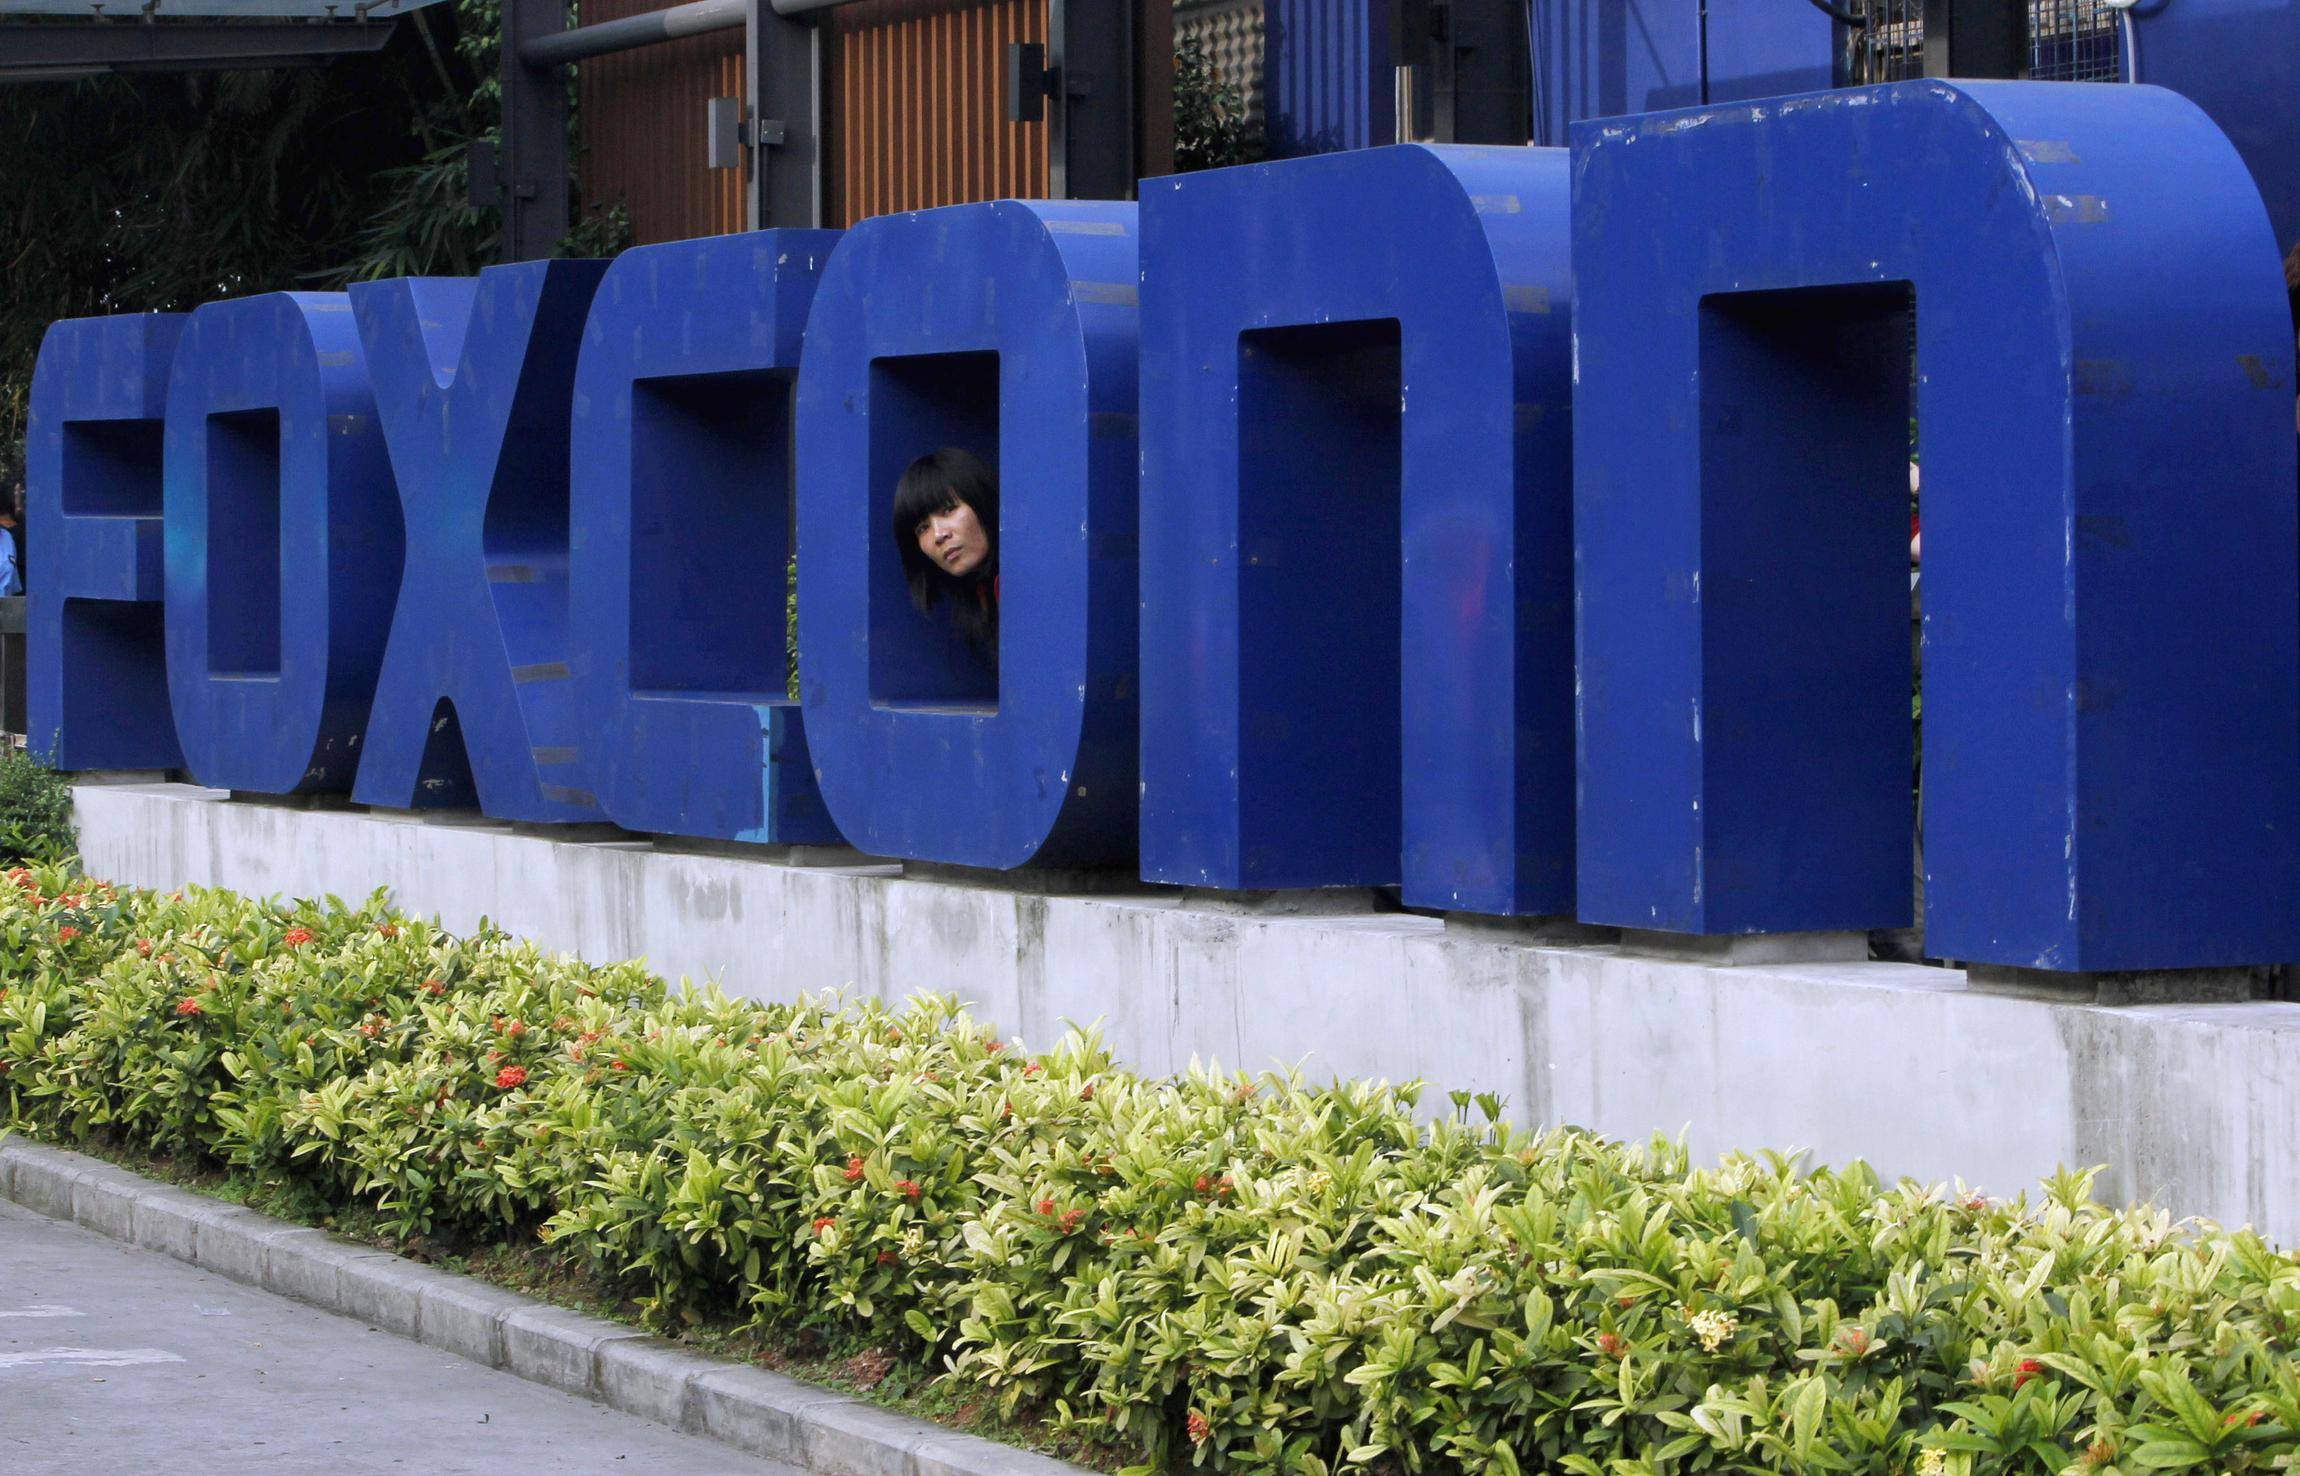 May Wisconsin's Foxconn Debacle Force National Policy Change